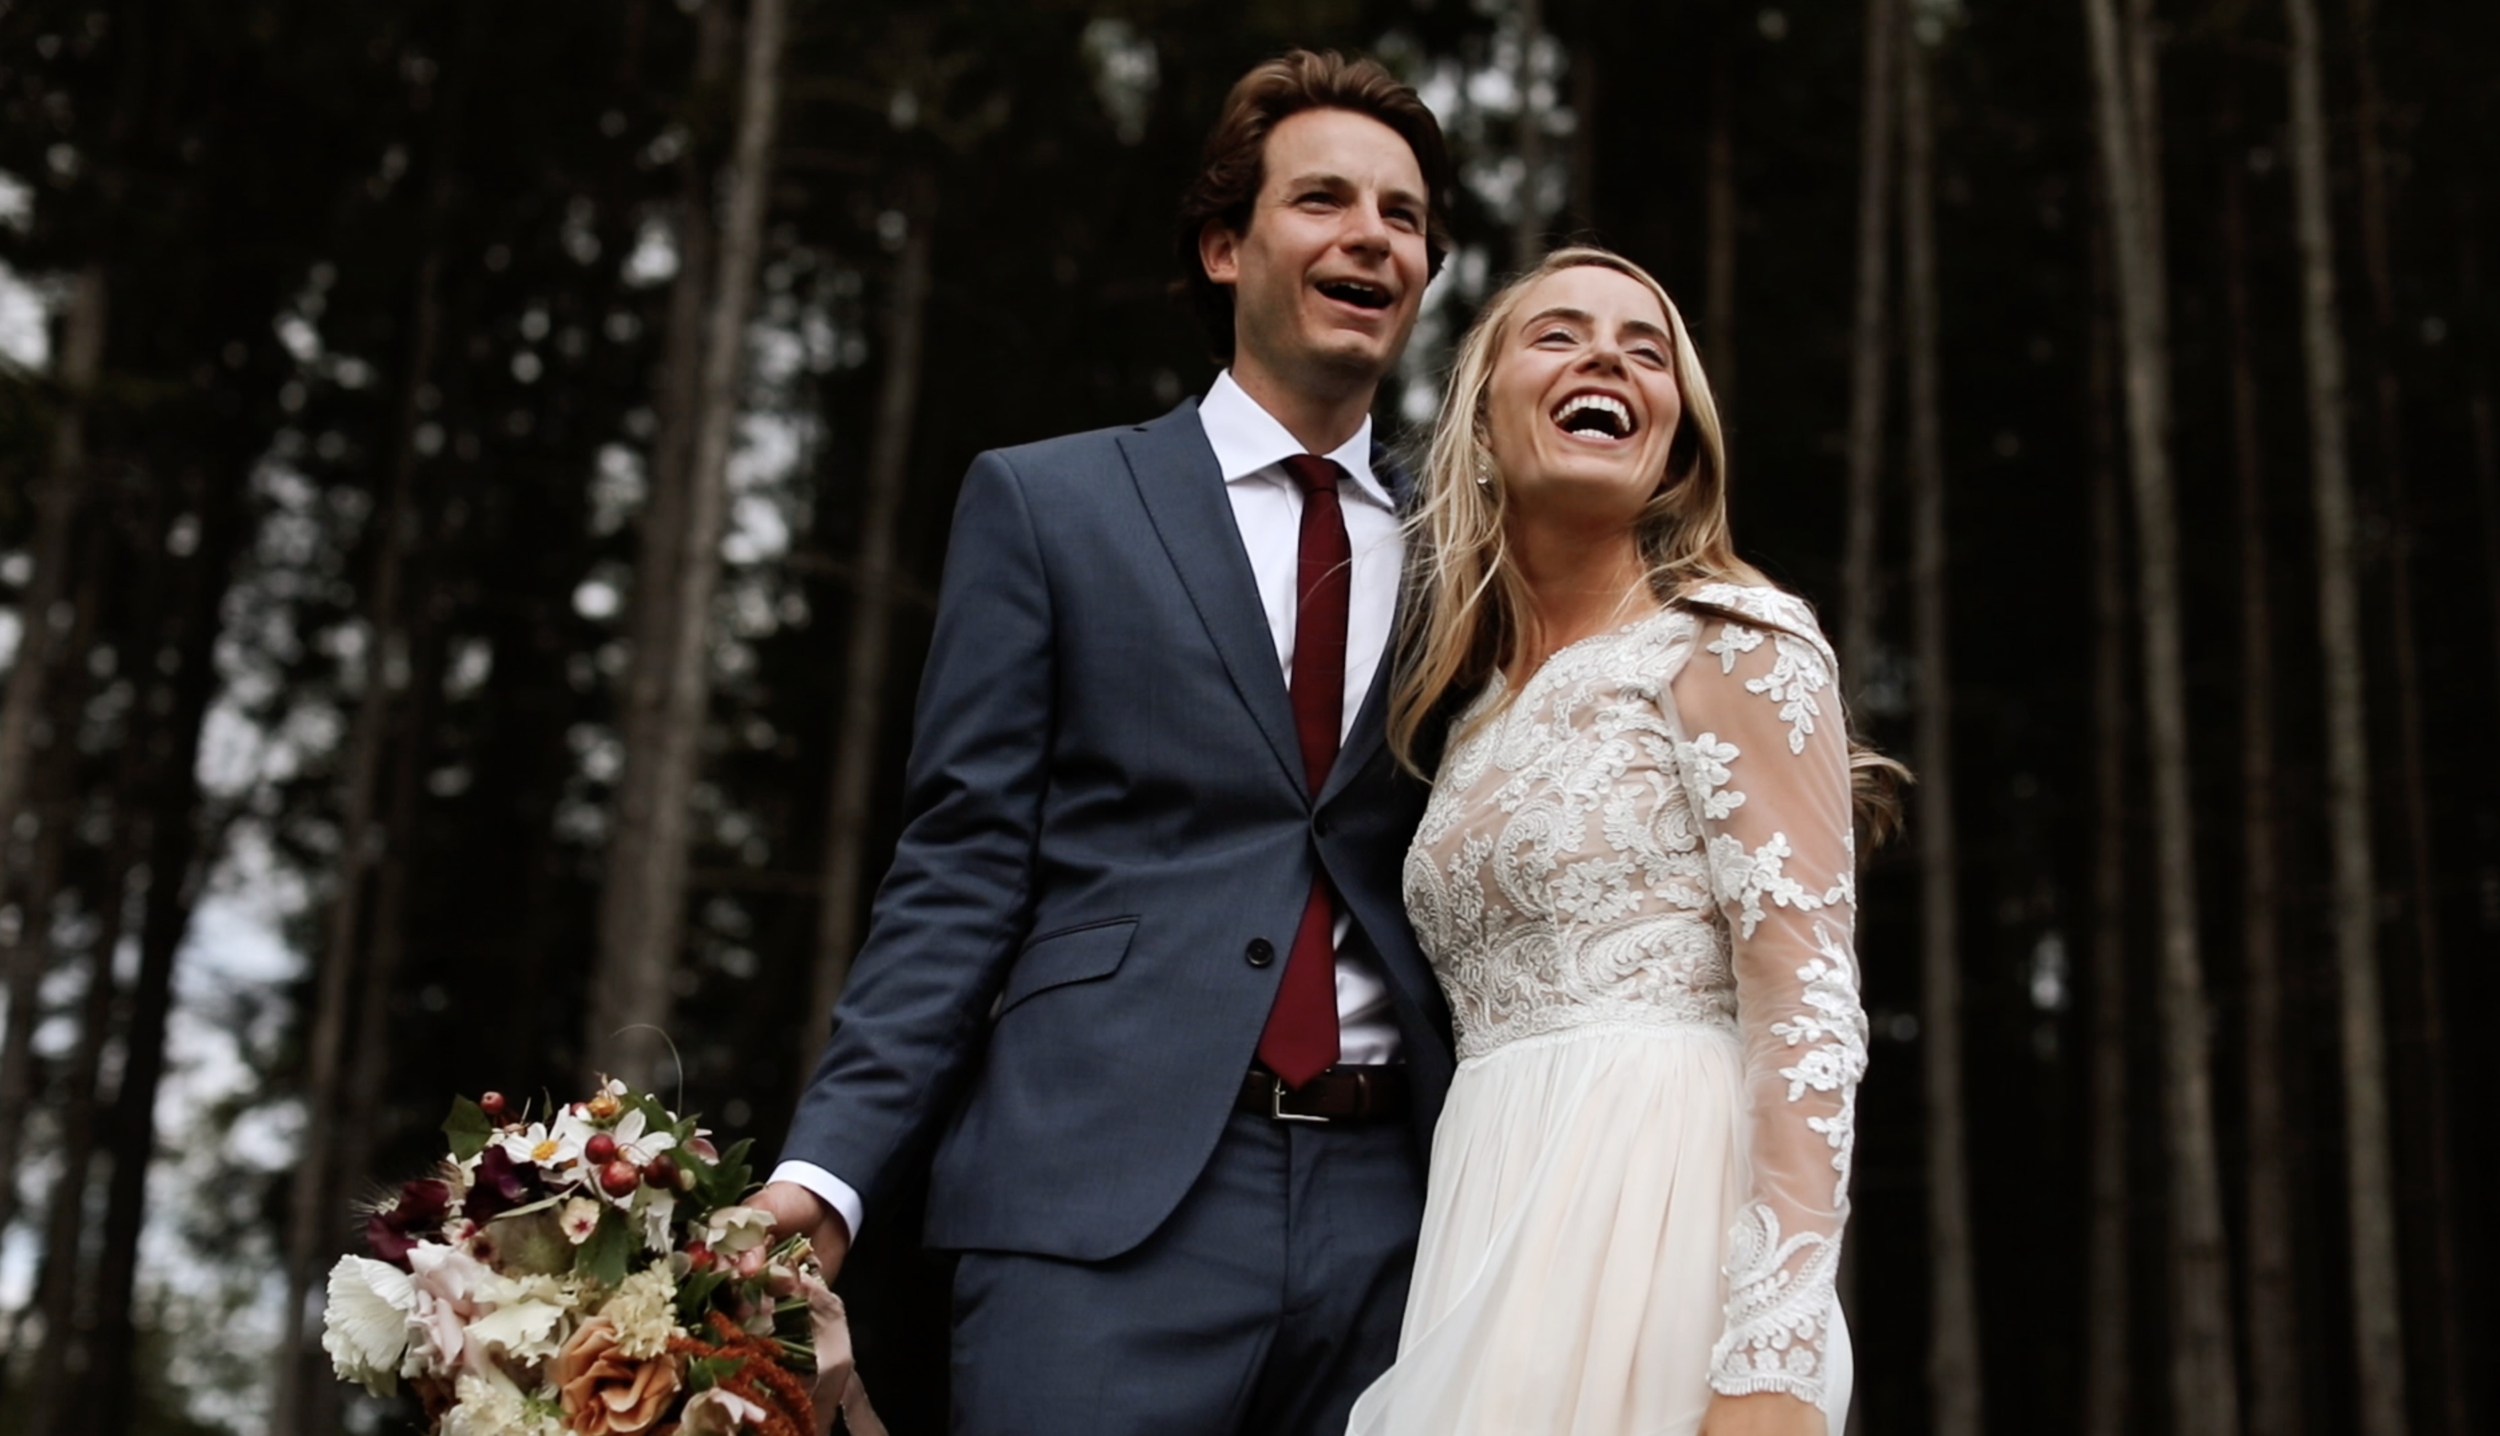 This Boho Chic Stowe Vermont Wedding Is A Must Watch They Had A